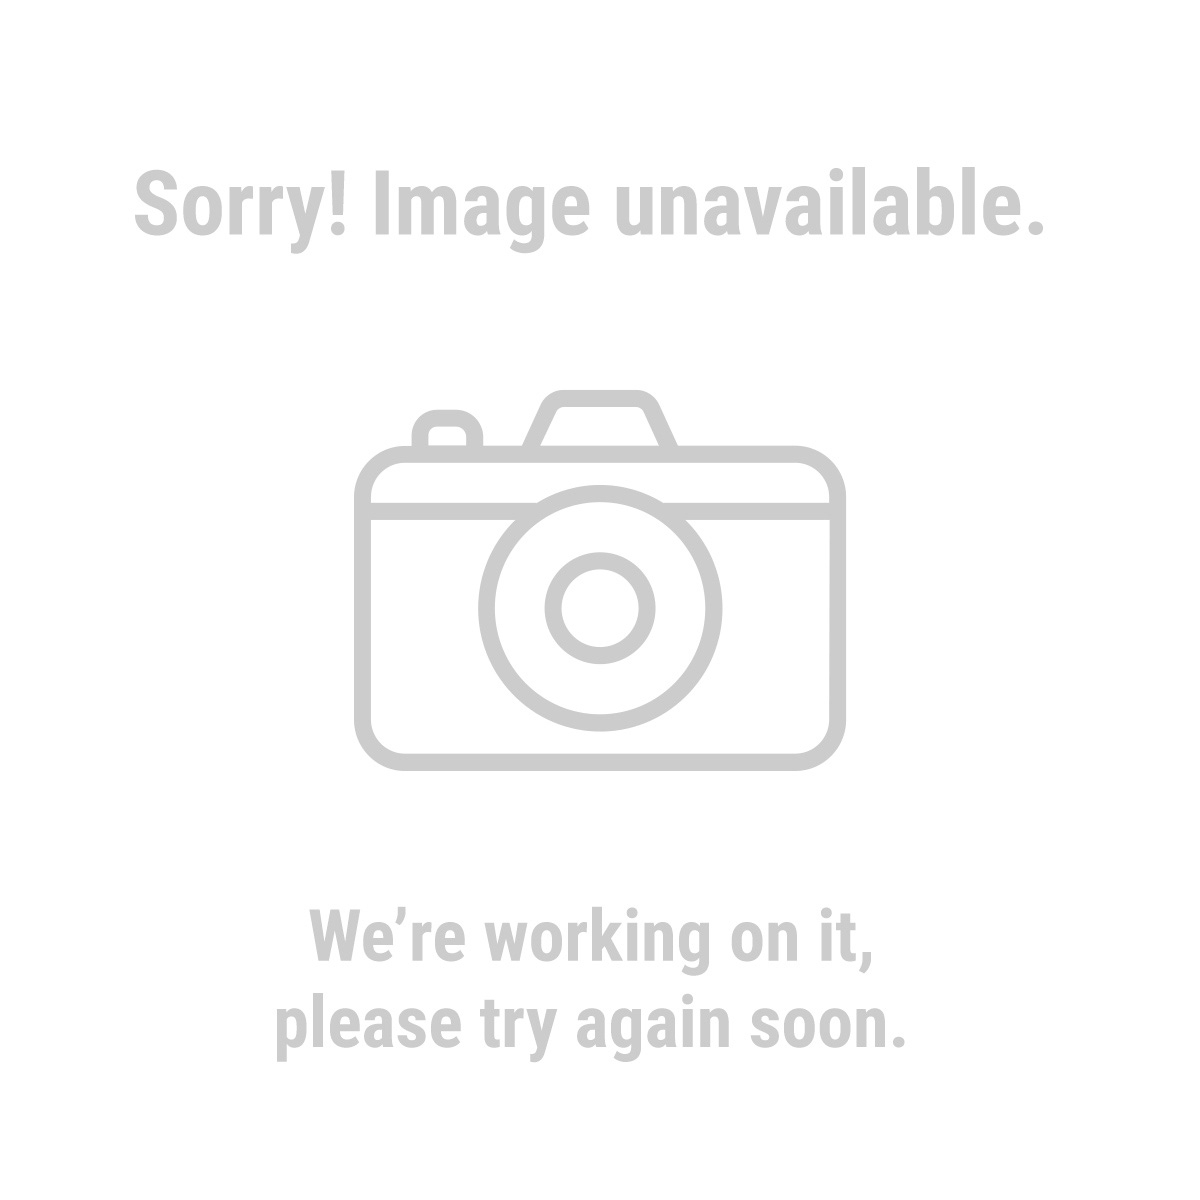 61796 750/1500 Watt Wood Stove Style Electric Heater